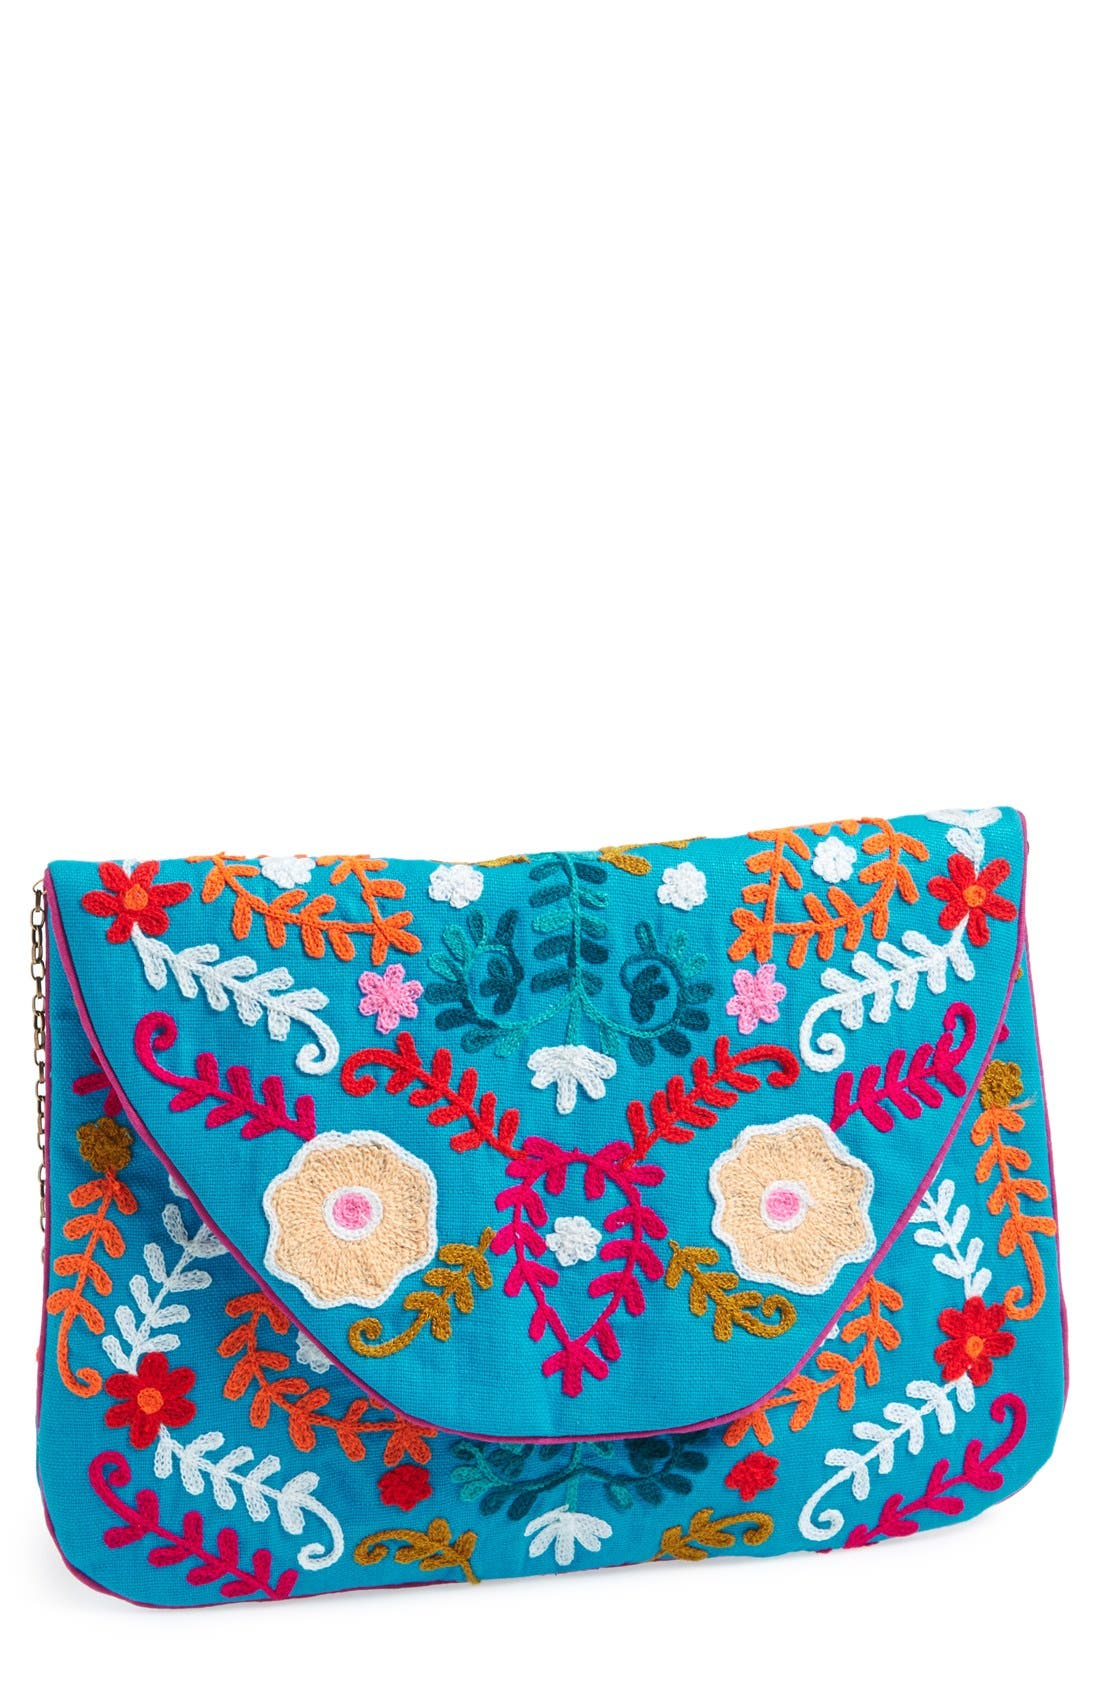 Alternate Image 1 Selected - Big Buddha 'Large' Oversized Embroidered Clutch